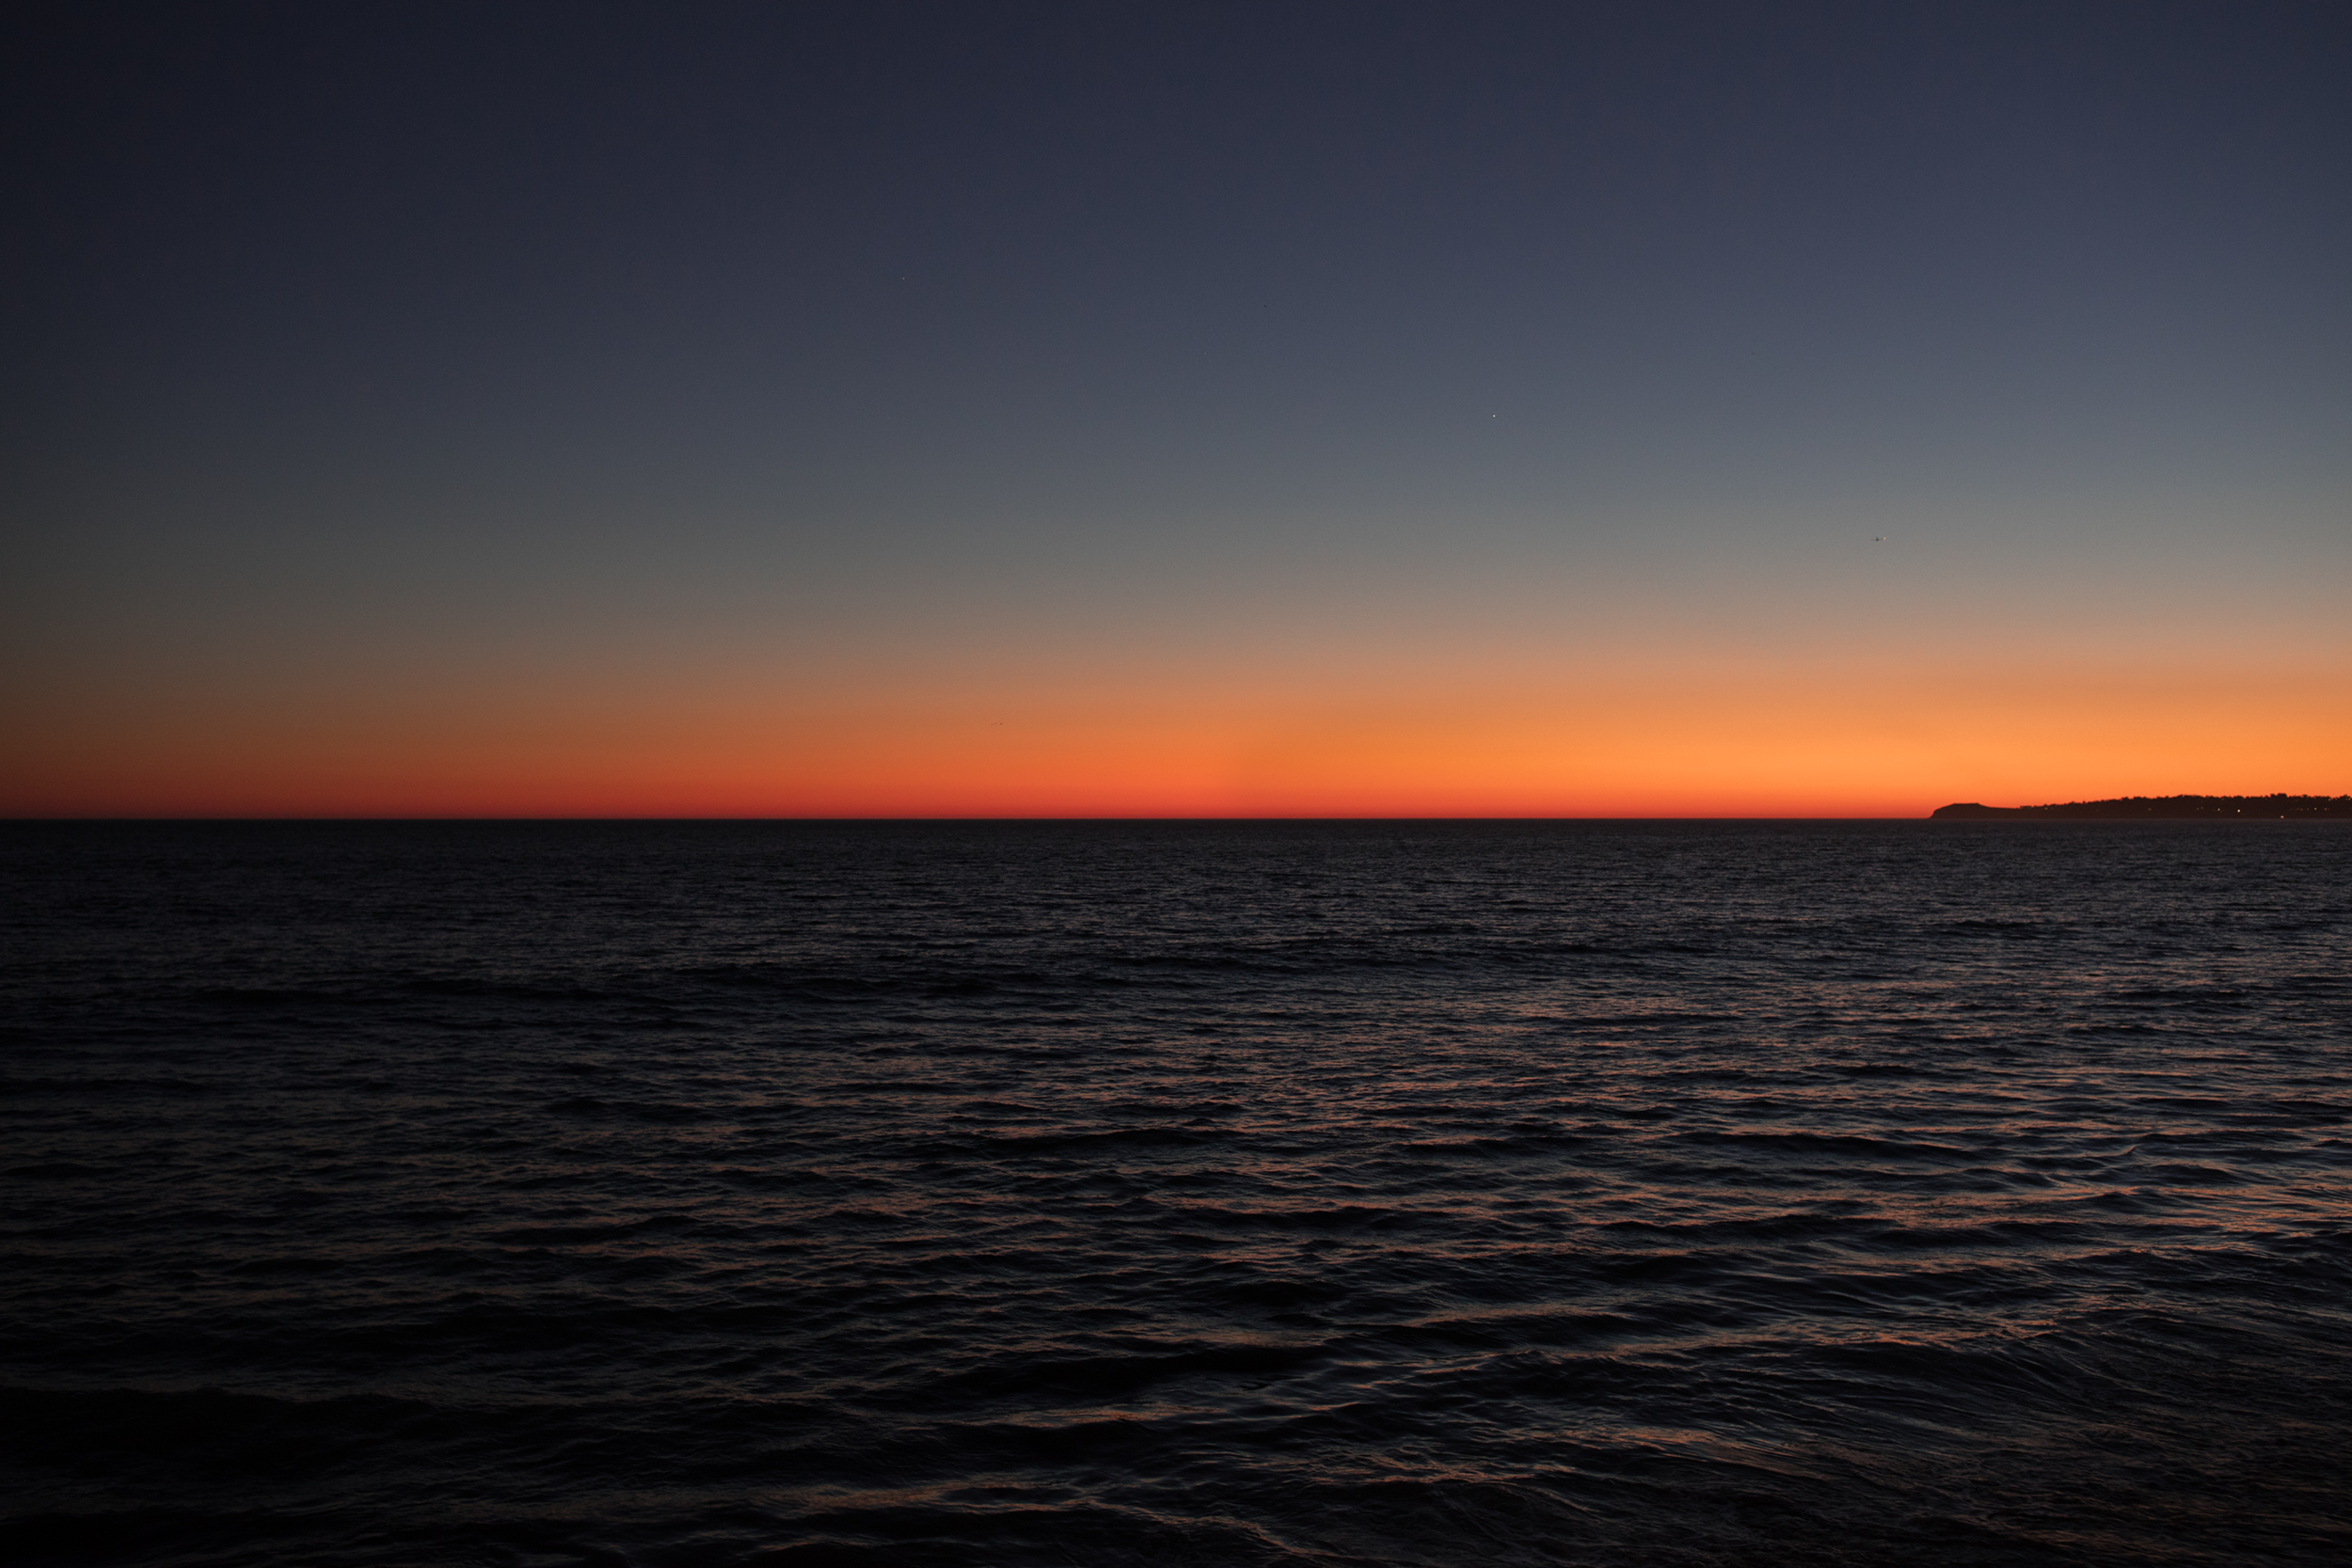 Final light of day as the sun sets over the Pacific Ocean in Malibu.